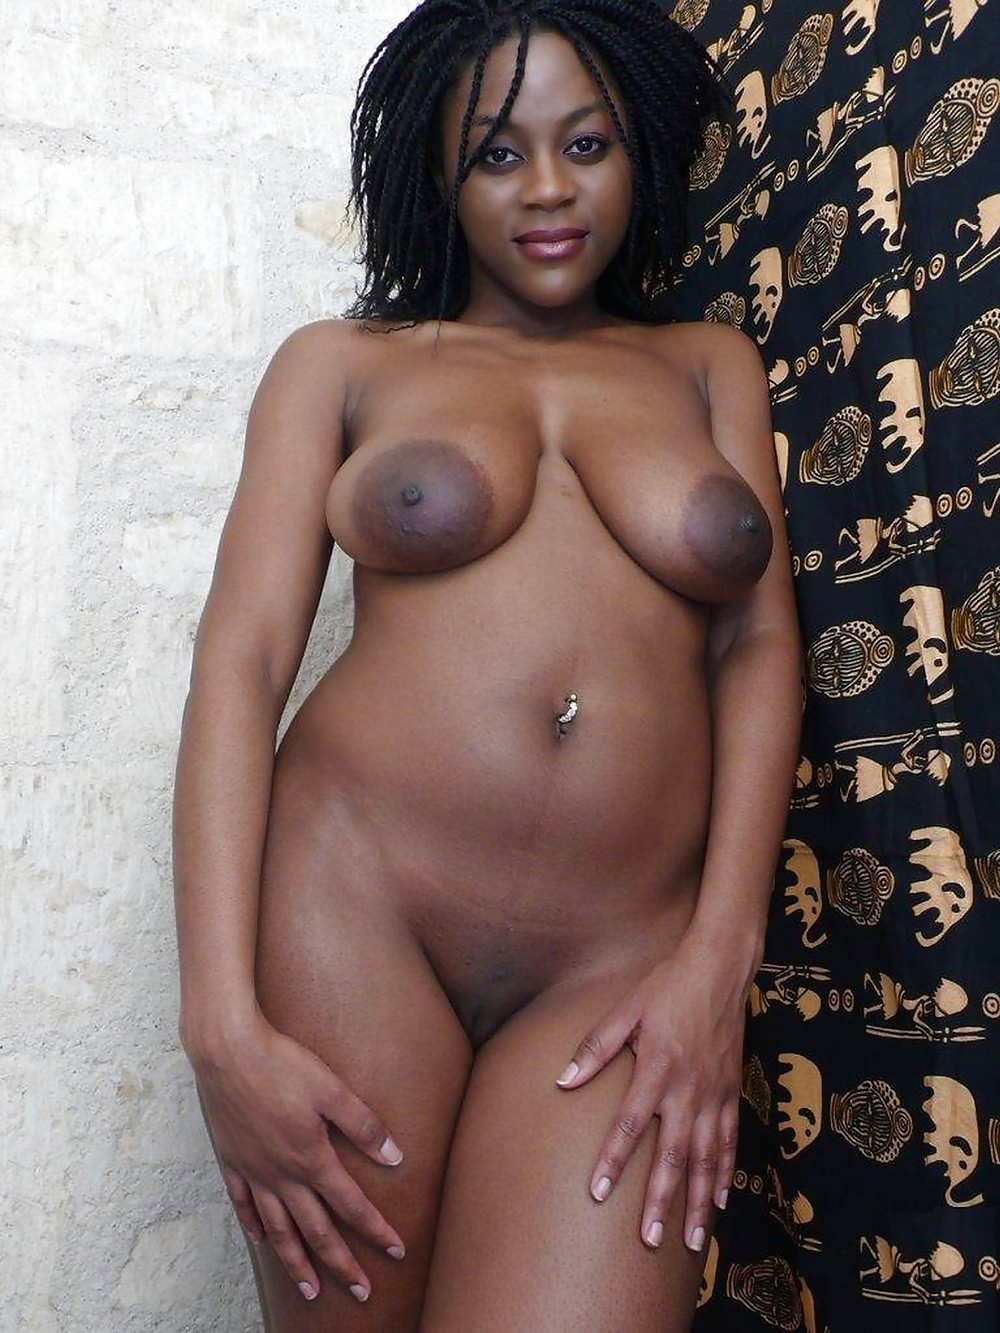 Hot nude black girls tumblr